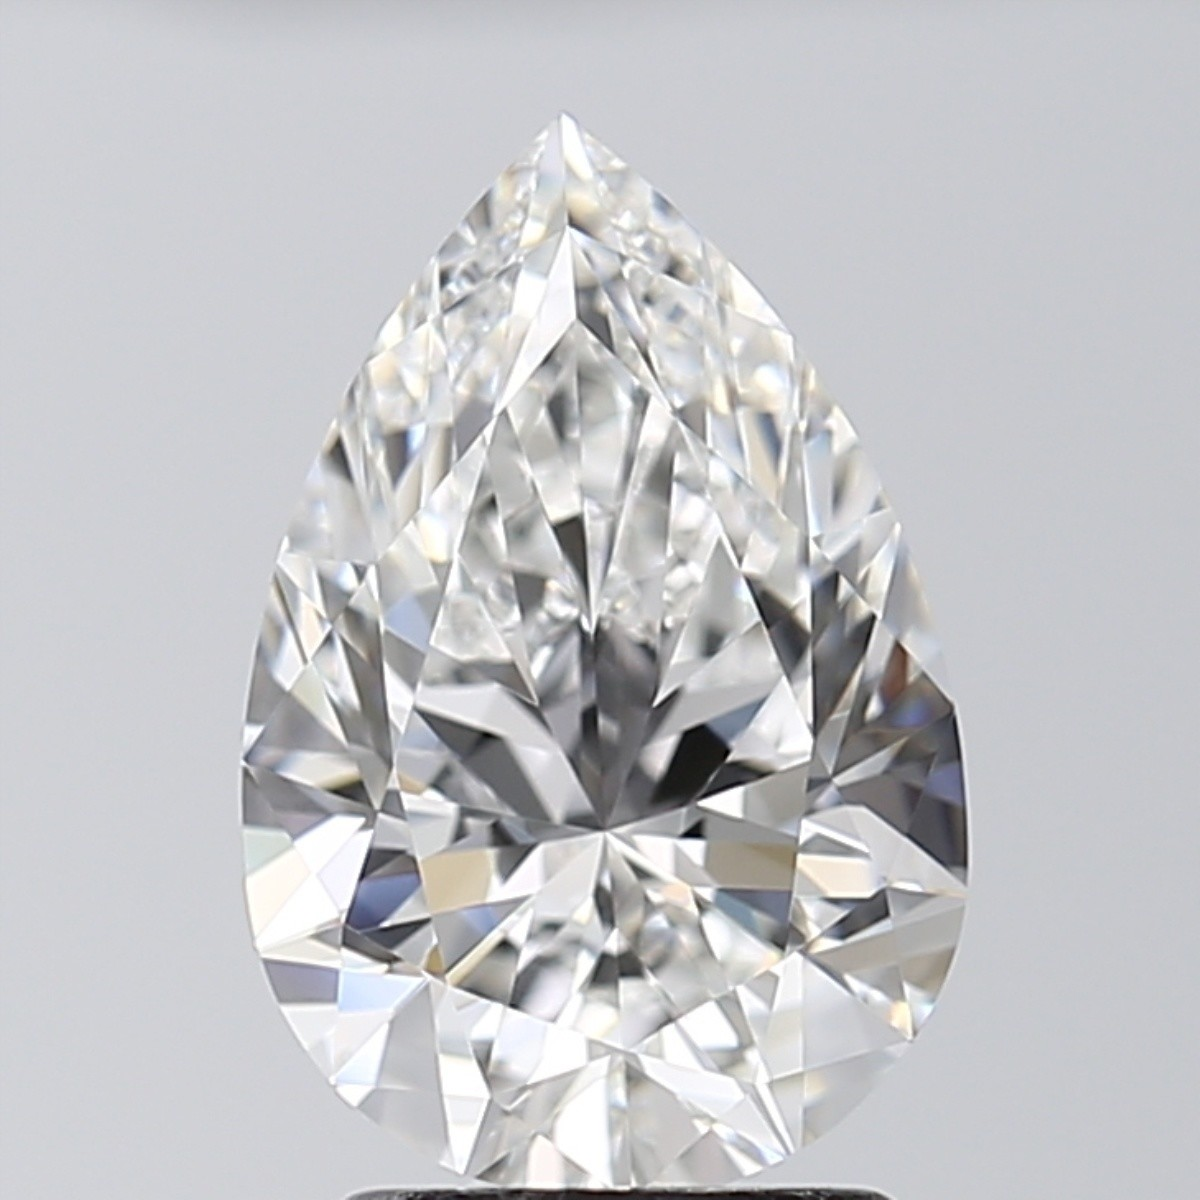 2.21 Carat Pear Diamond (F/FL)